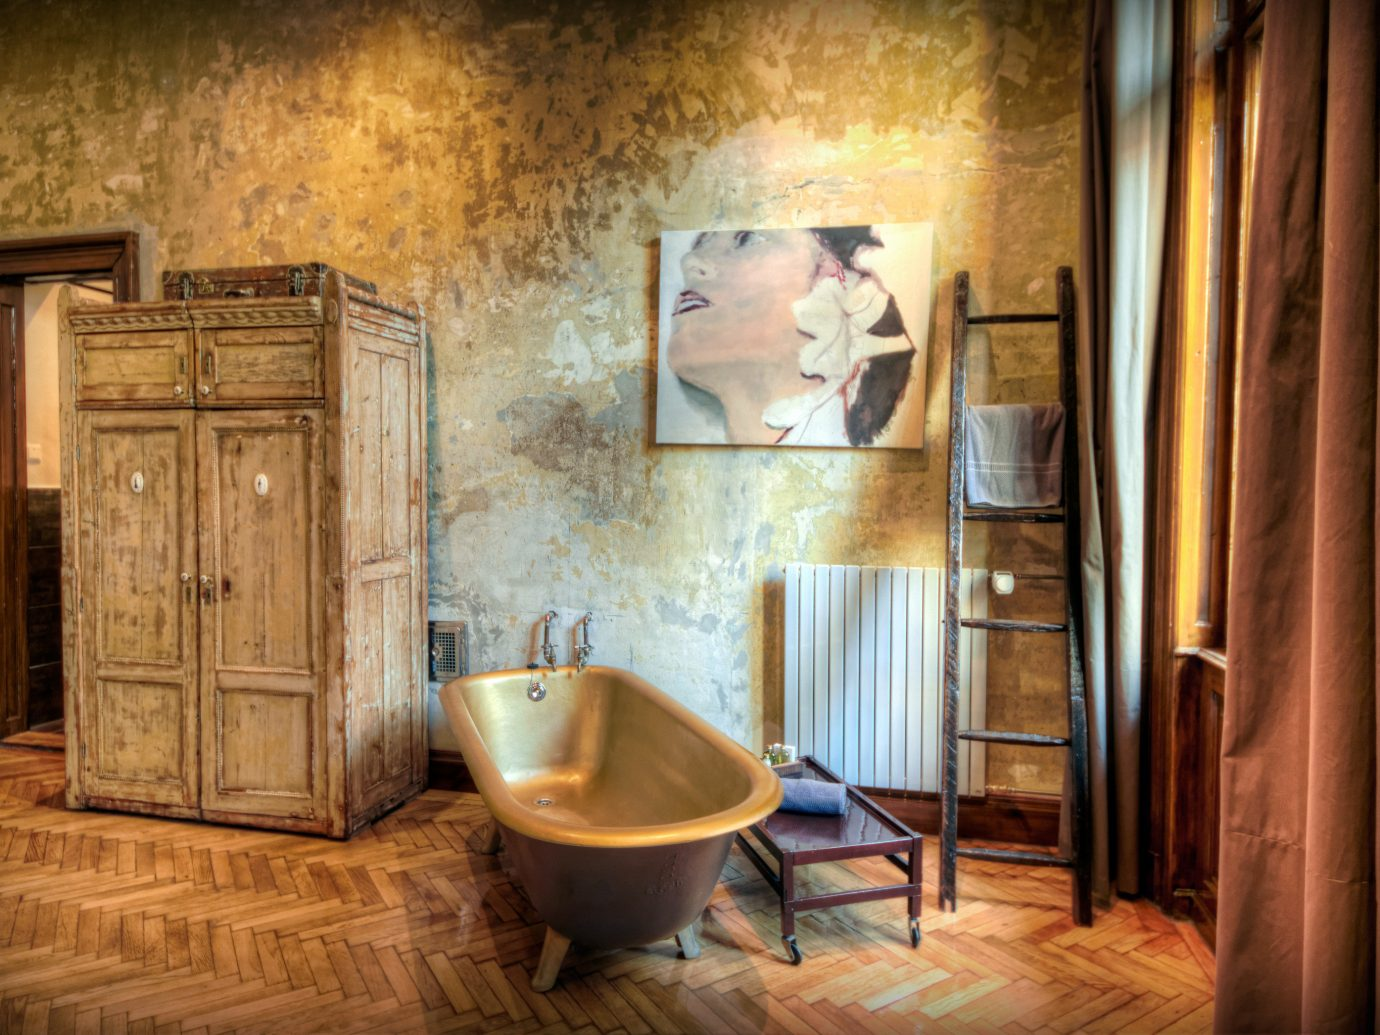 Bath Bedroom Budapest Cultural Design europe Hotels Hungary Living Modern Rustic indoor floor room bathroom interior design home estate old tub stone